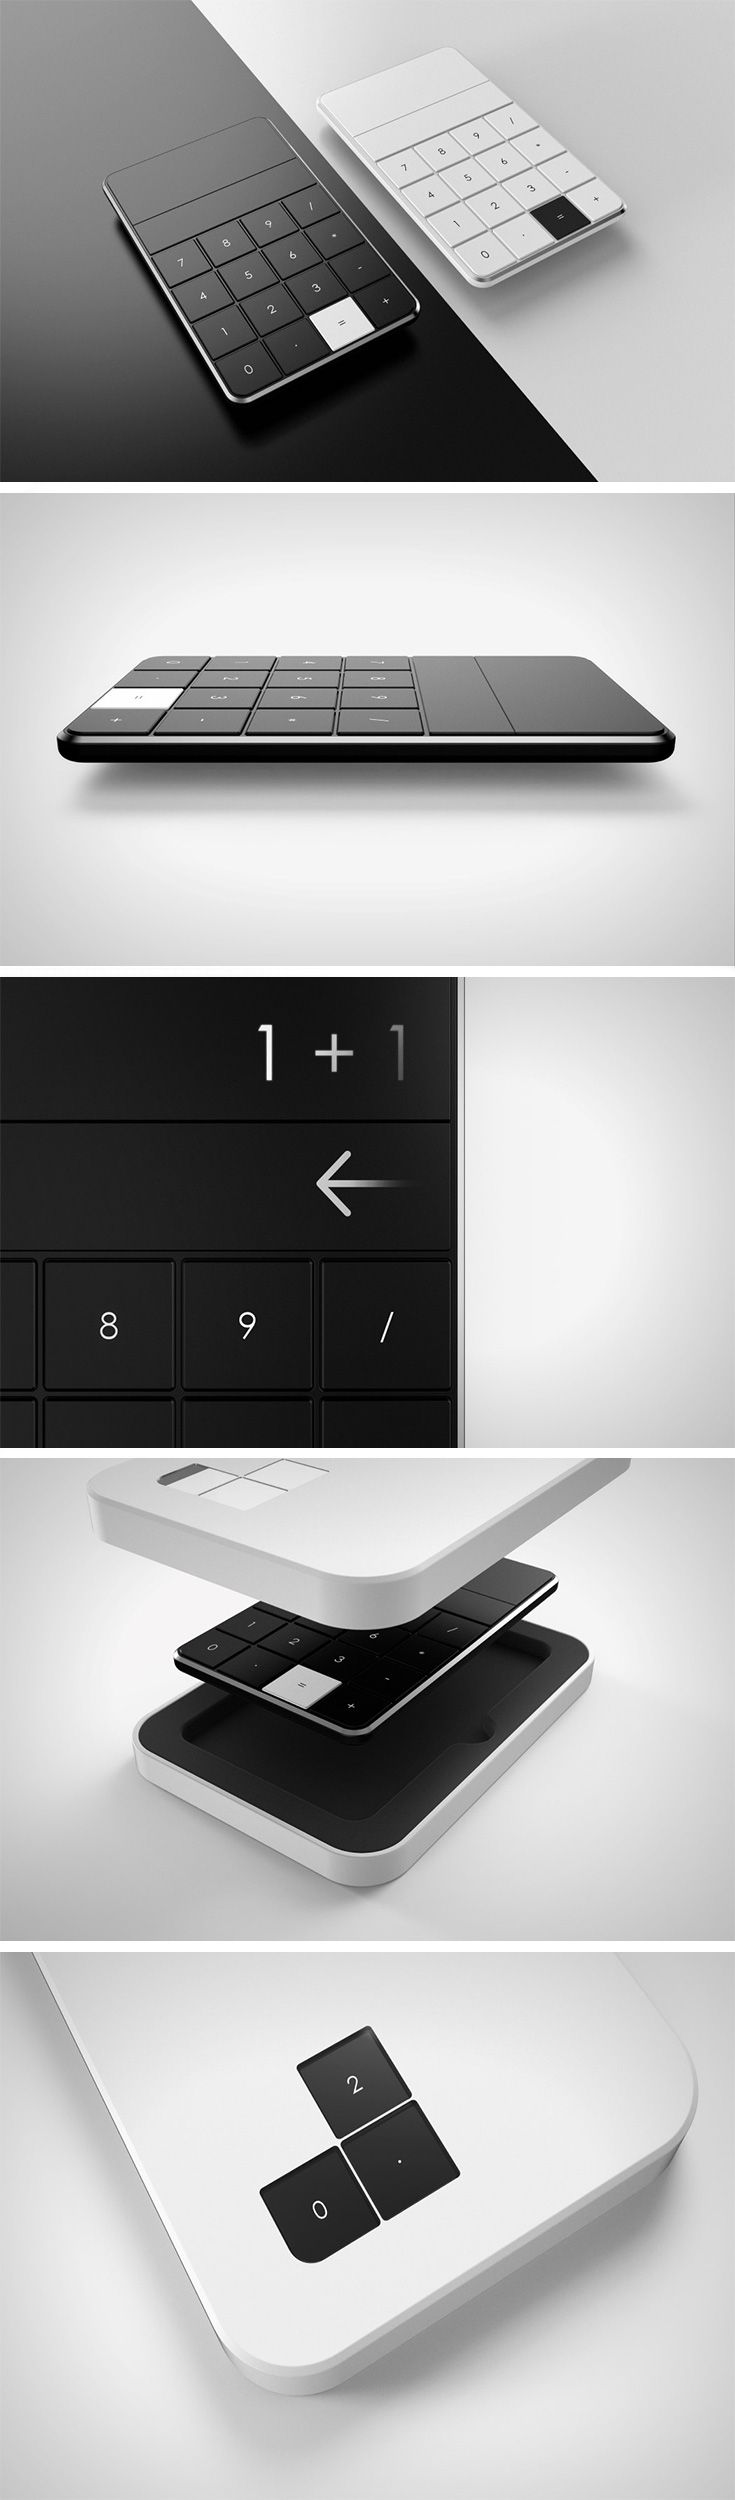 The Calculator 2.0 is just mesmerising to look at, and it comes with an incredibly sleek design that even makes use of a touch bar below the screen. The entire product has a monochrome vibe to it with jet black keys and screen with just the '=' key in white, really punctuating the design in a beautiful way.